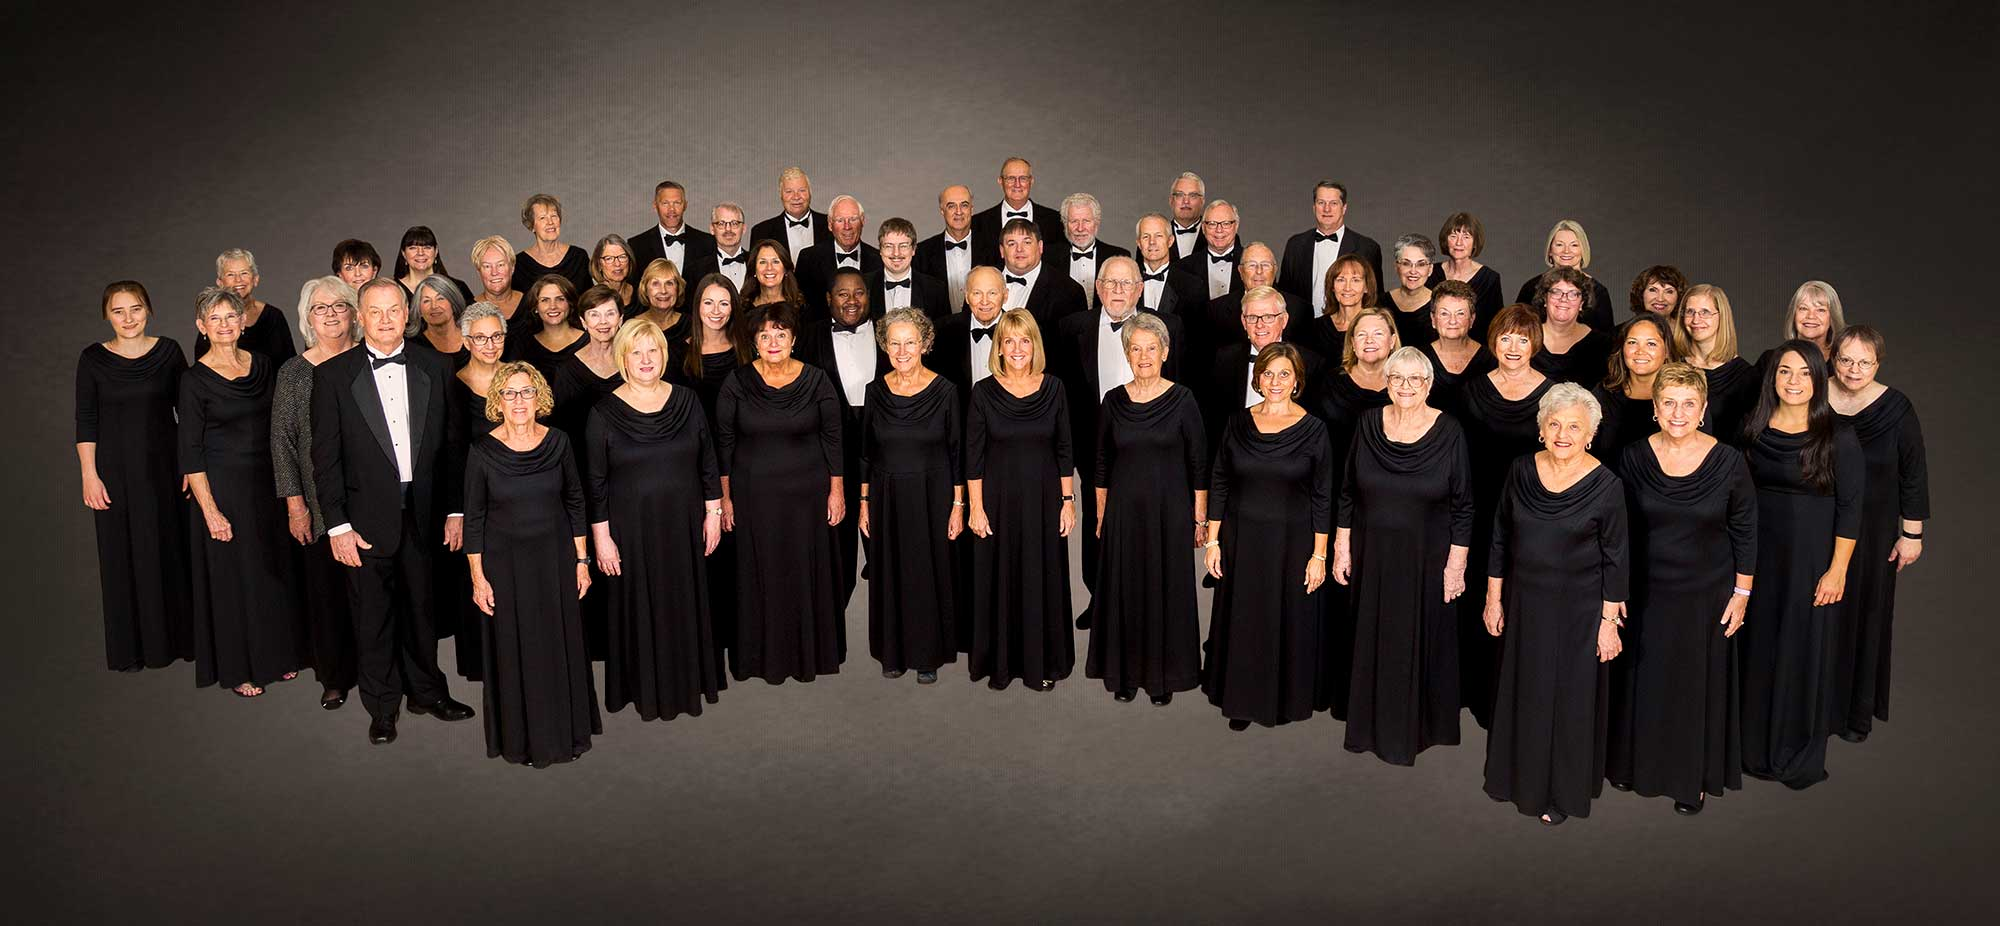 Cape Fear Chorale group photo